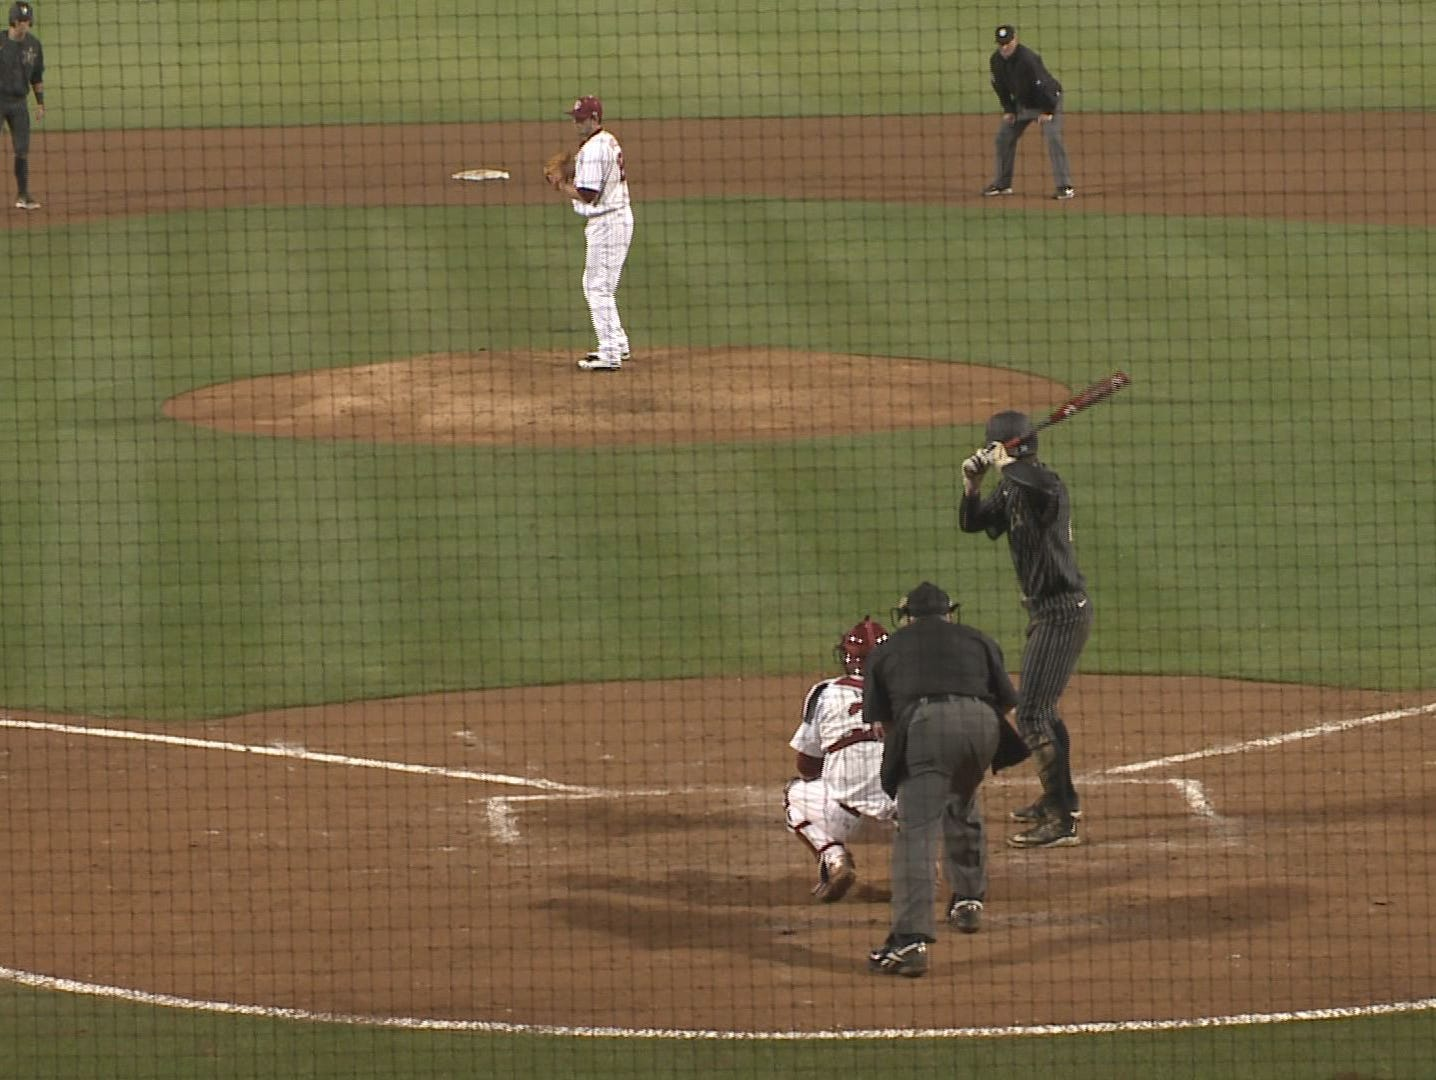 The Gamecocks trailed 1-0 in the sixth before fourth-ranked Vanderbilt scored four runs in the sixth and seventh innings.